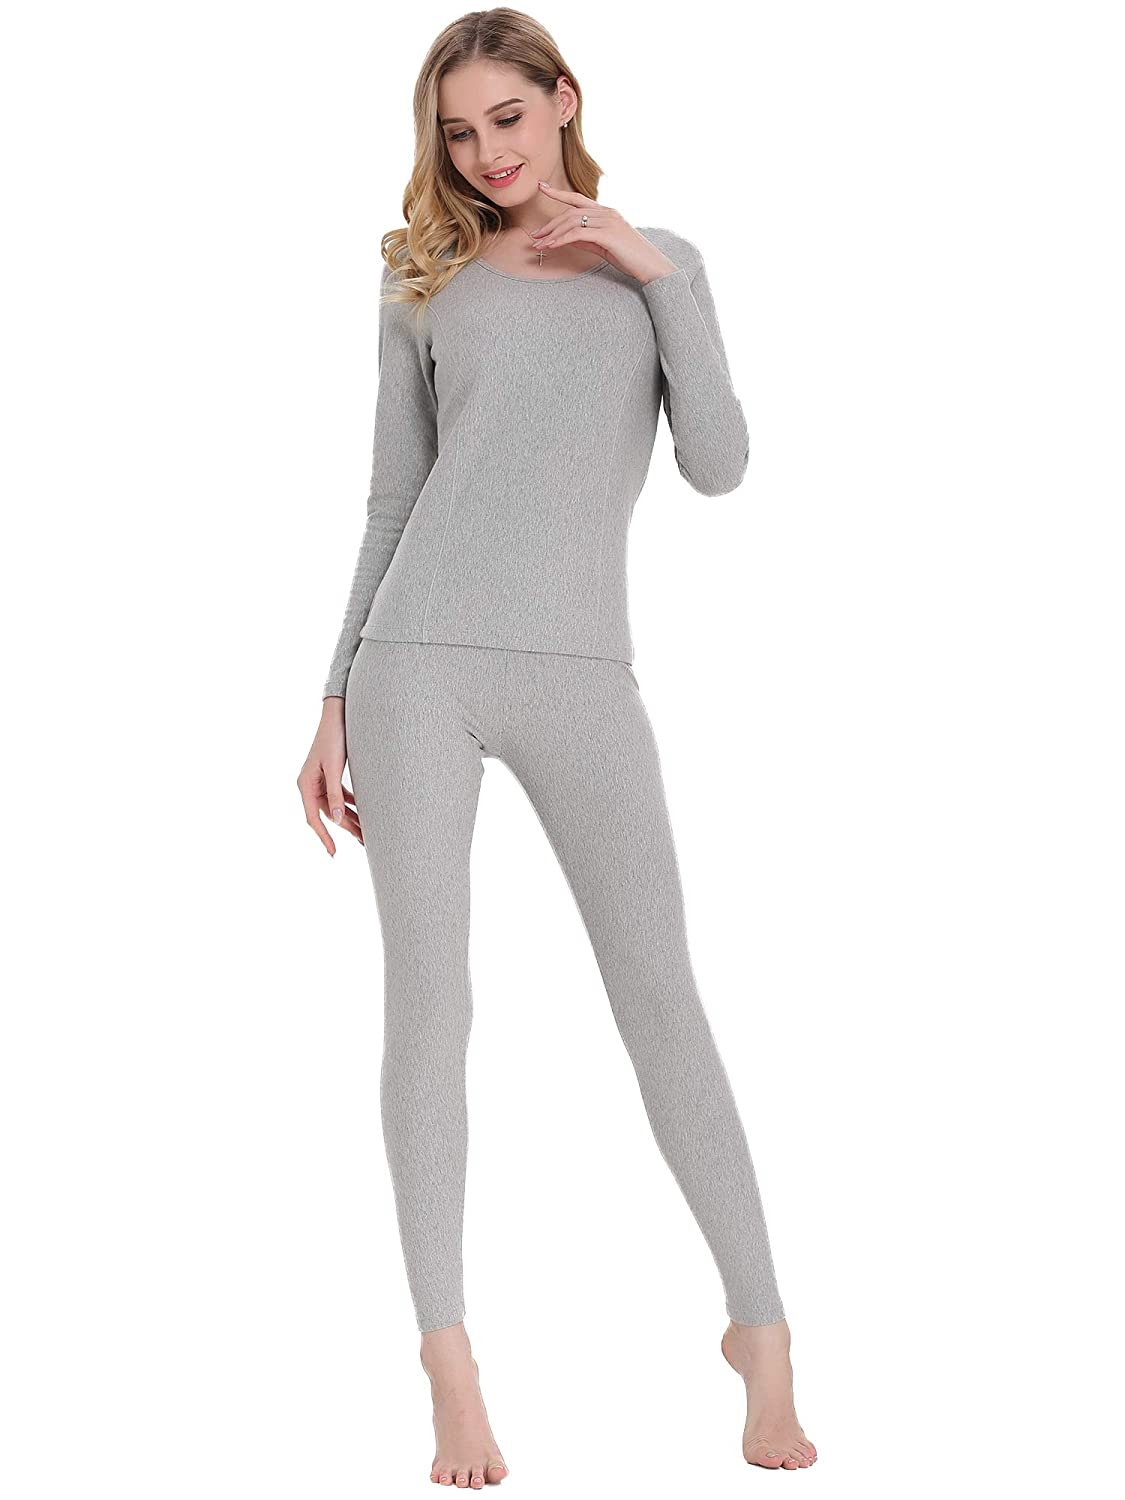 Amorbella Women's Thermal Underwear Base Layer Long Johns Set with Fleece Lined for Winter